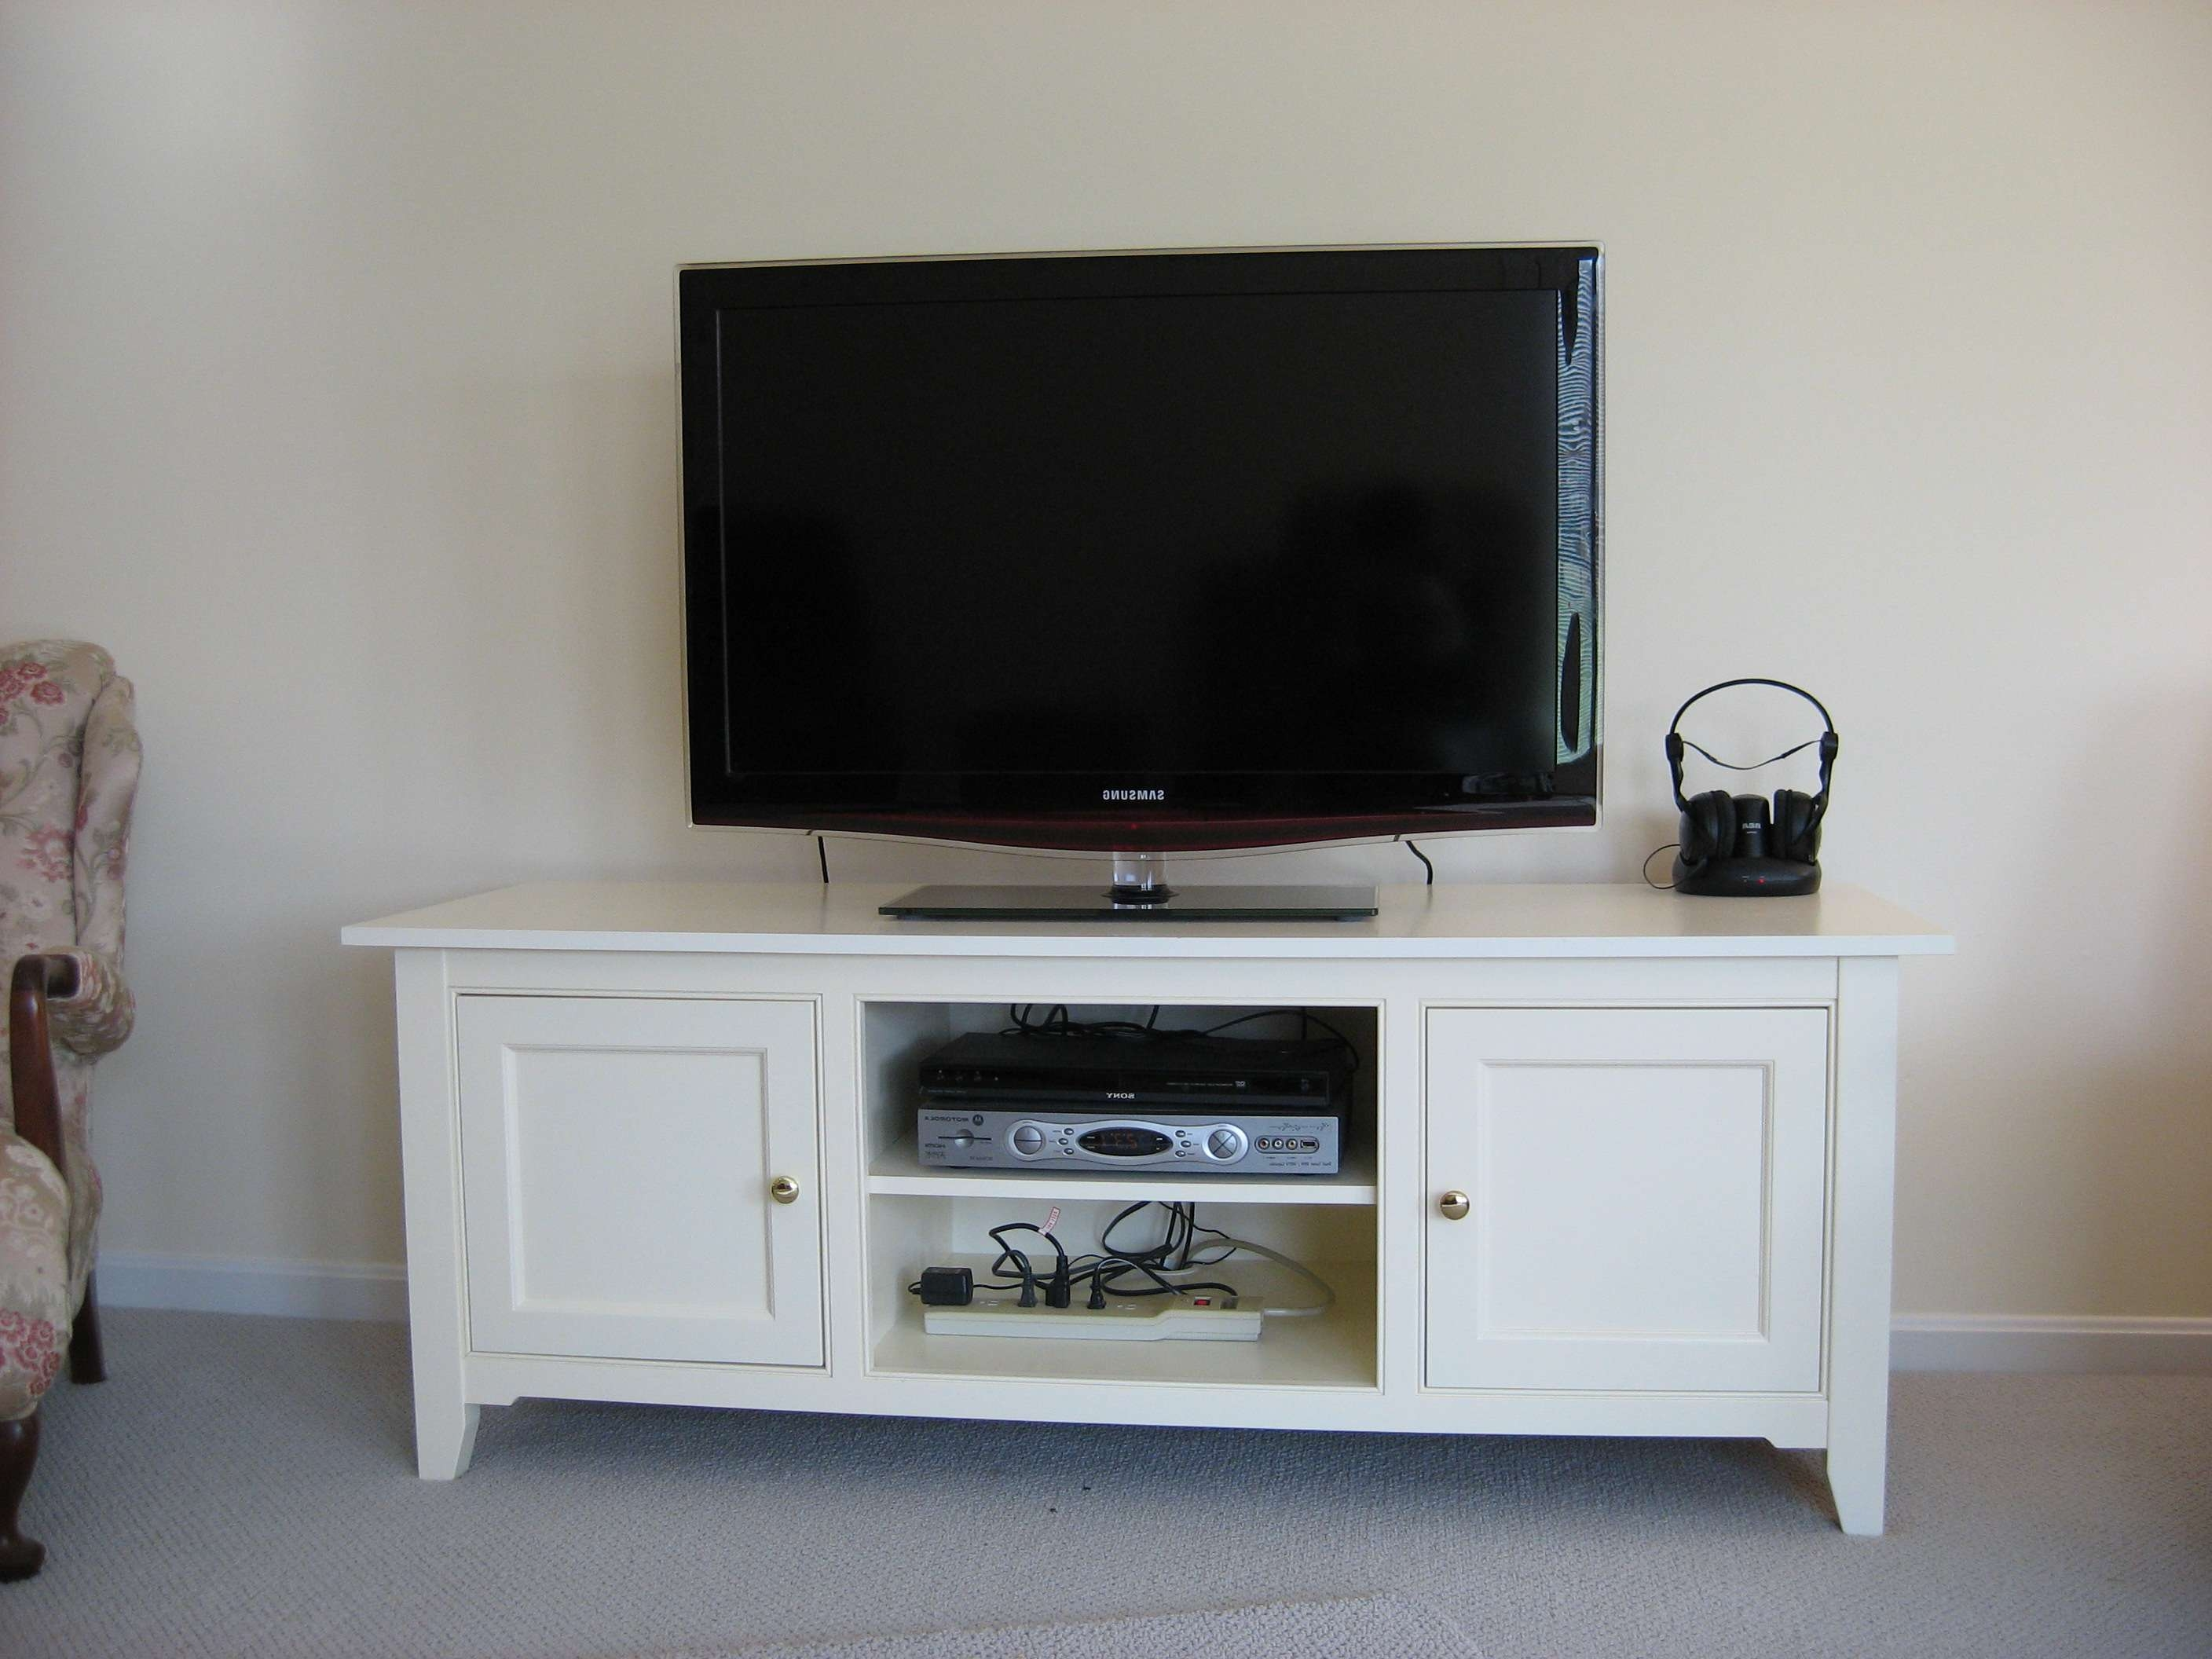 Cuisine: White Tv Stands For Flat Screens Distressed Broyhill Pertaining To White Tv Stands For Flat Screens (View 4 of 15)